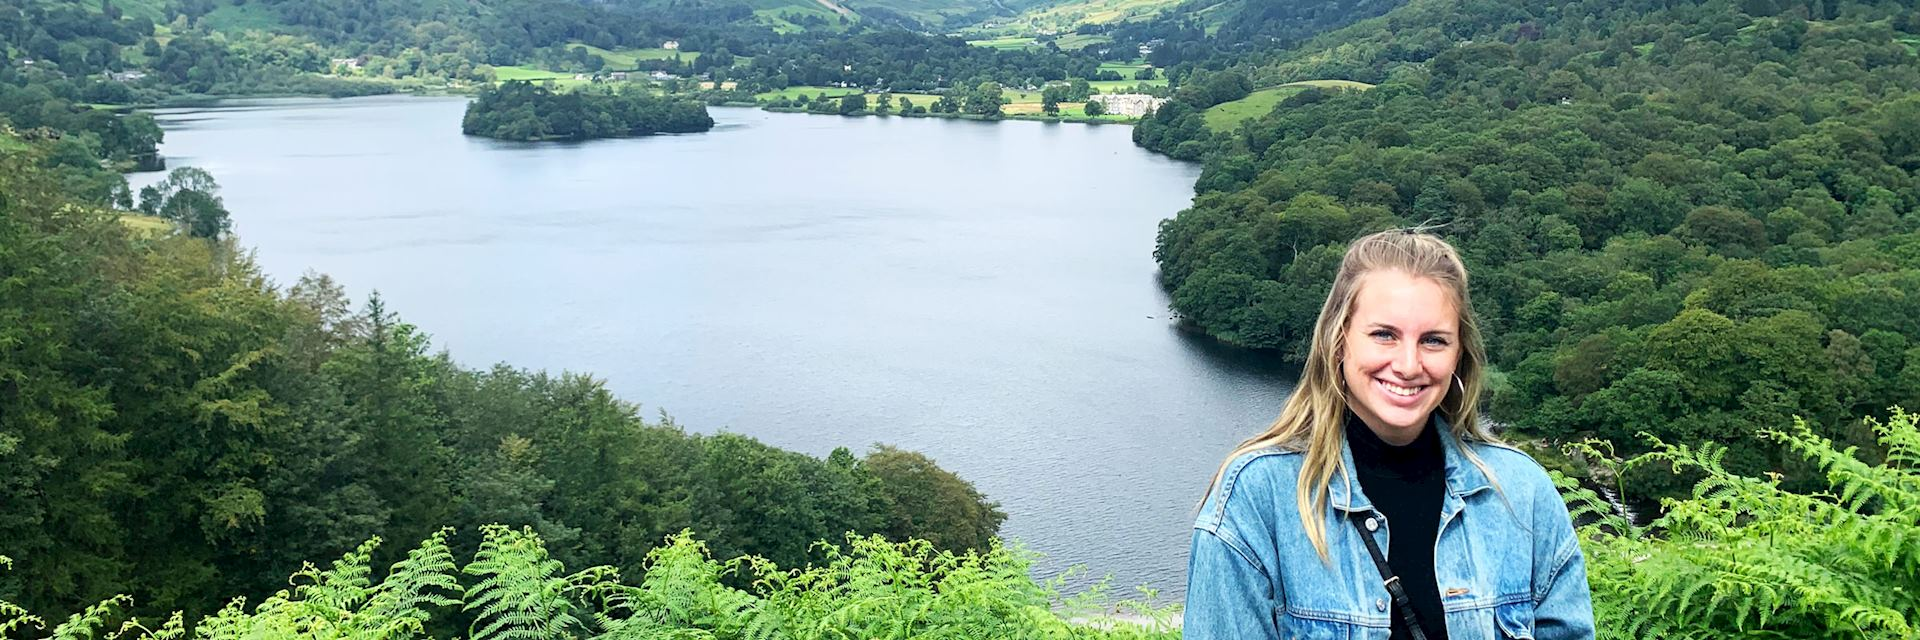 Delaney in the Lake District, England